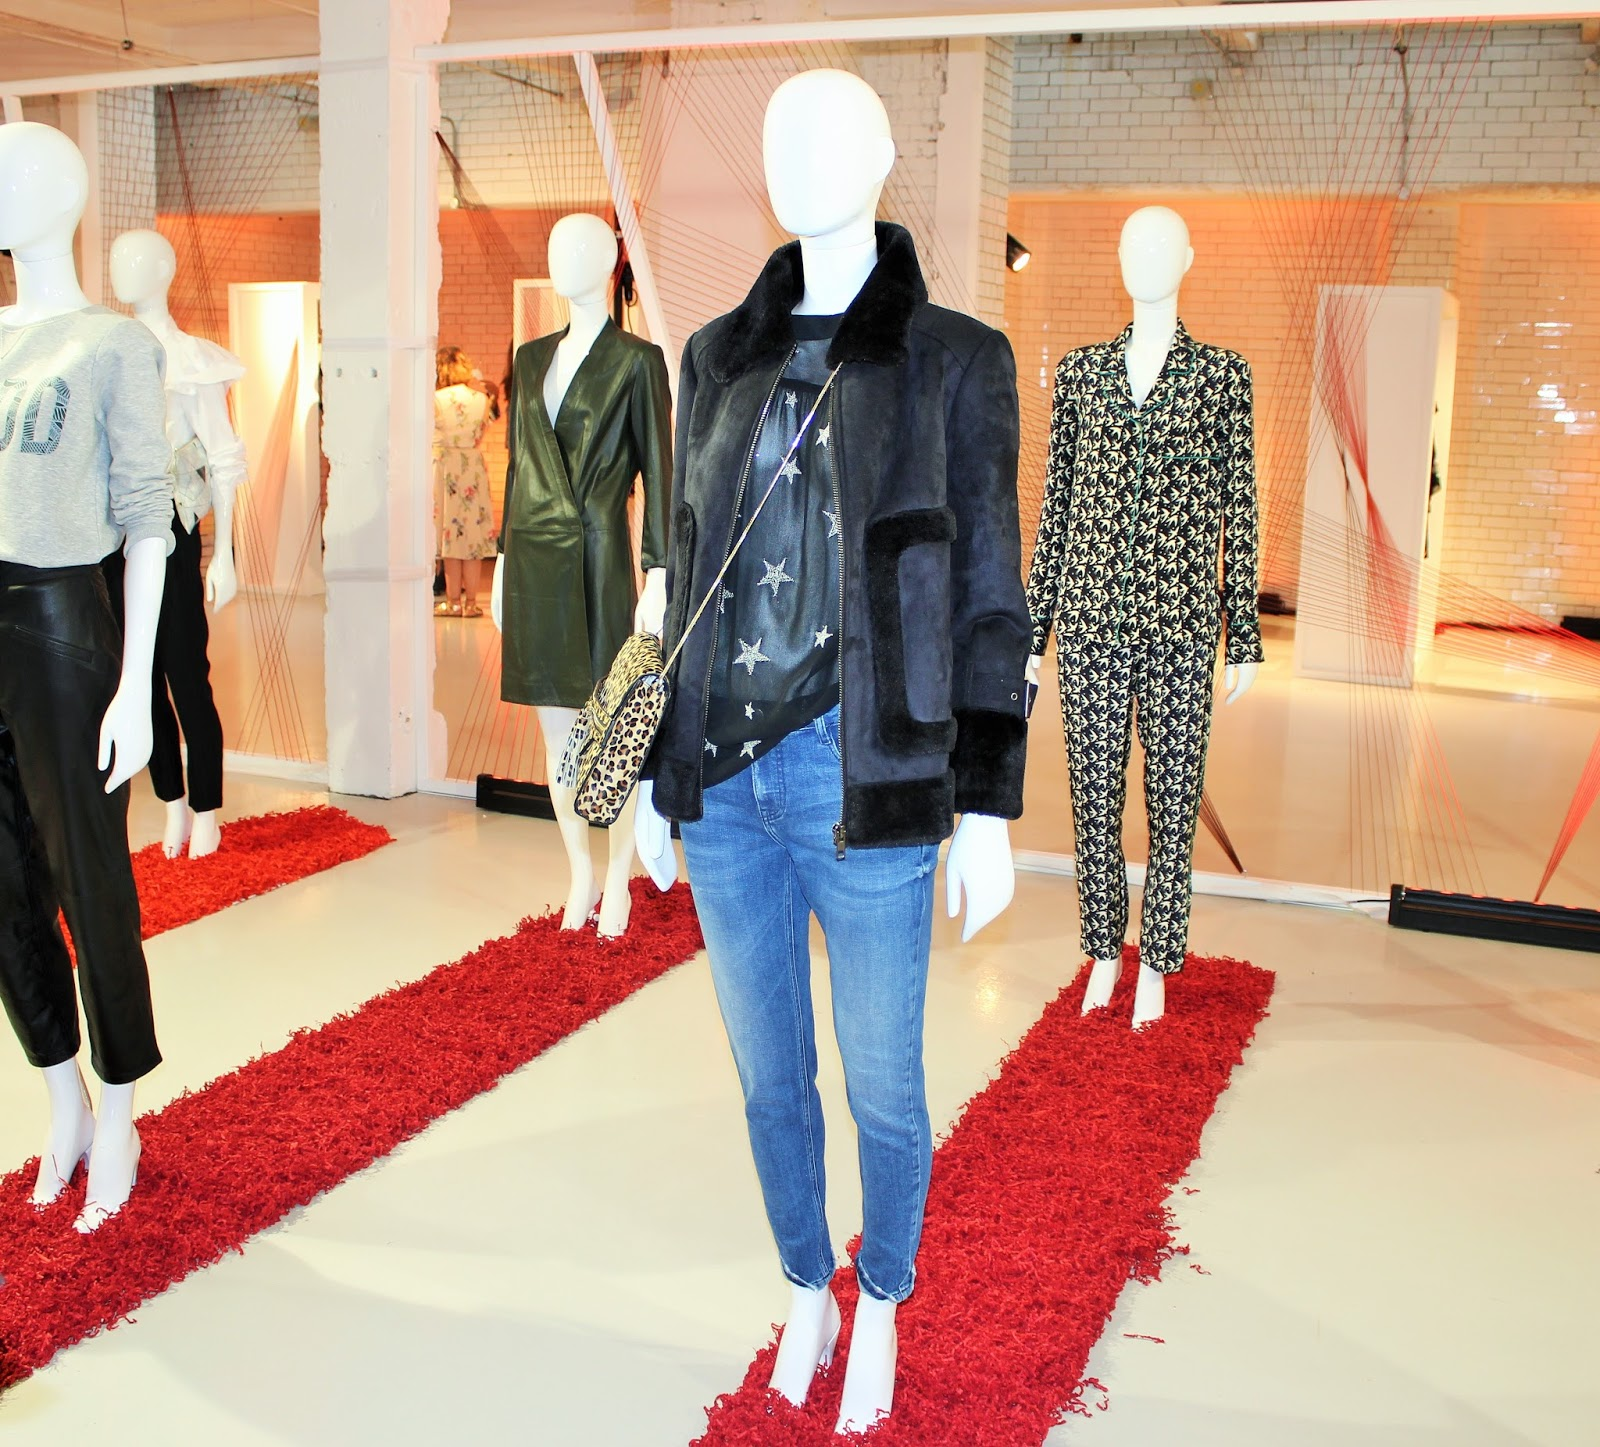 Debenhams Autumn Winter 2016 Fashion and Home Press Event 17